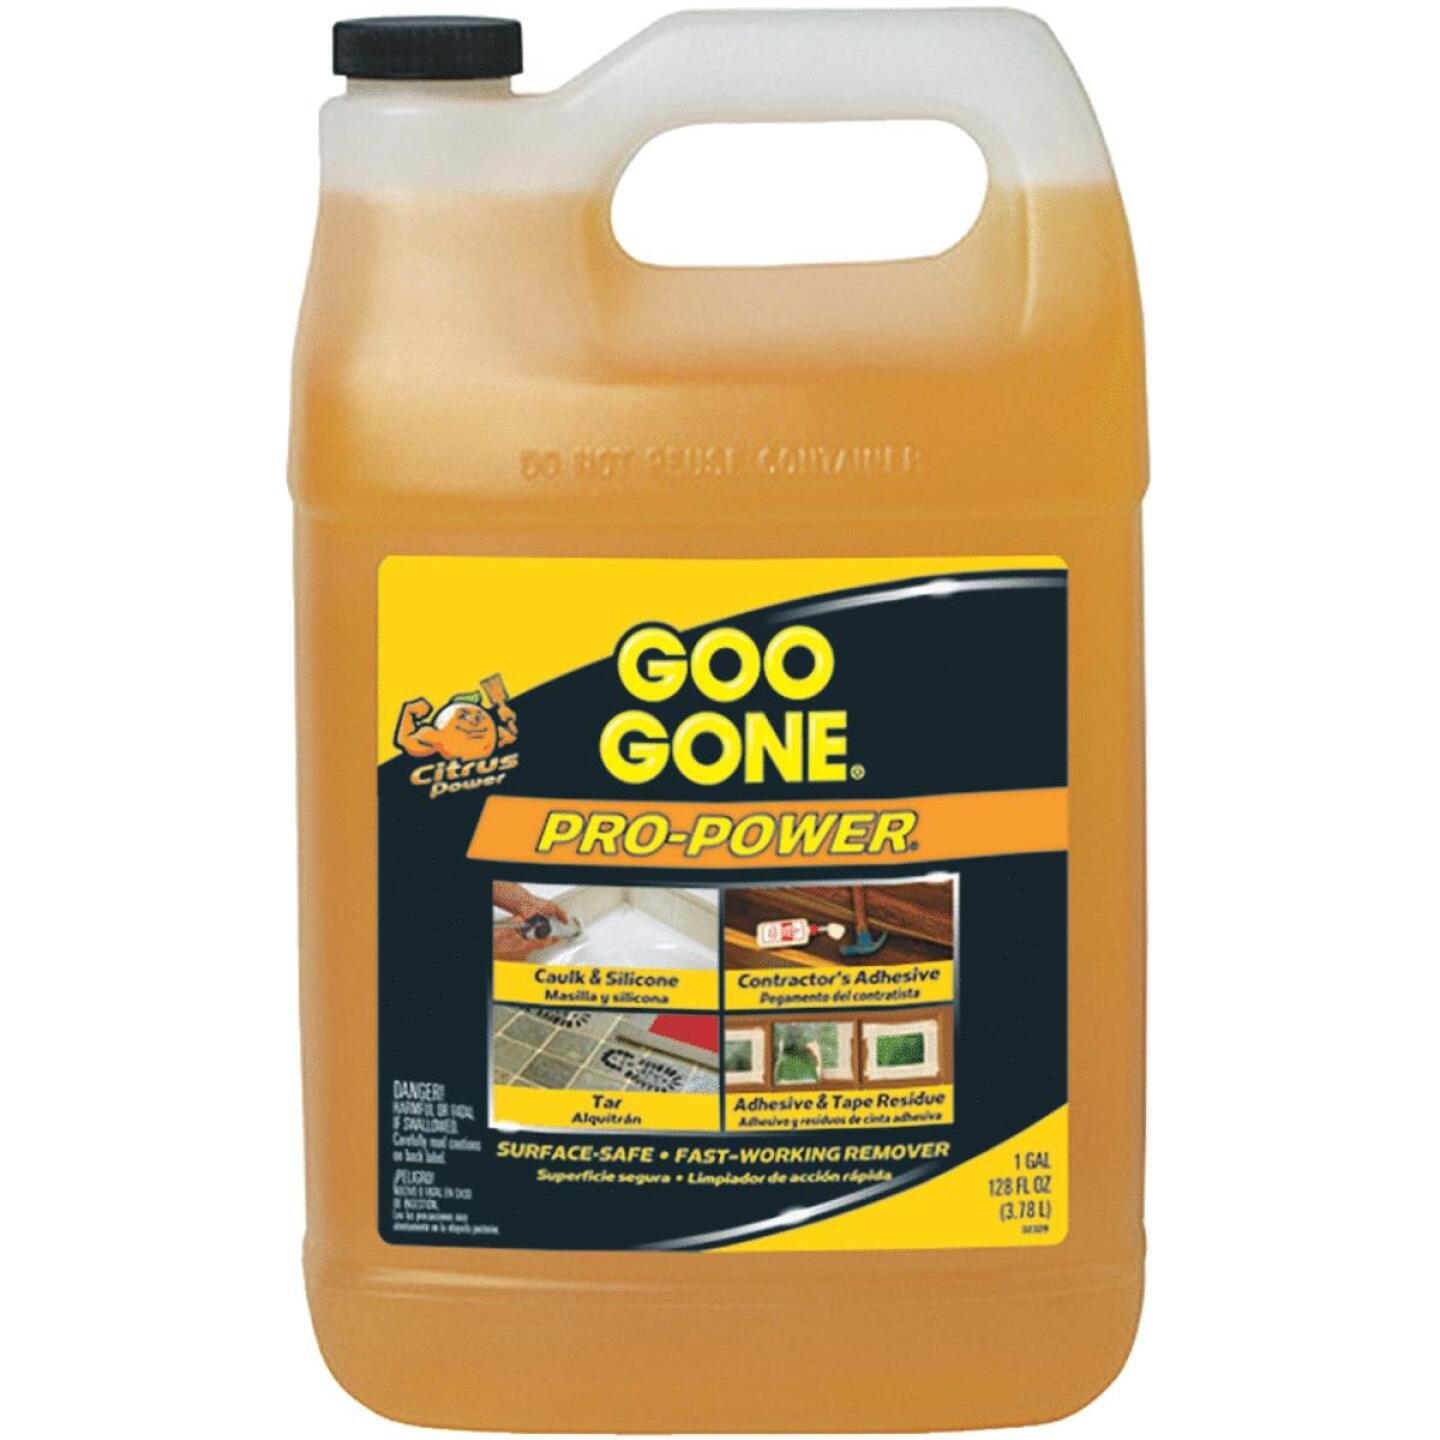 Goo Gone 1 Gal. Pro-Power Adhesive Remover Image 337